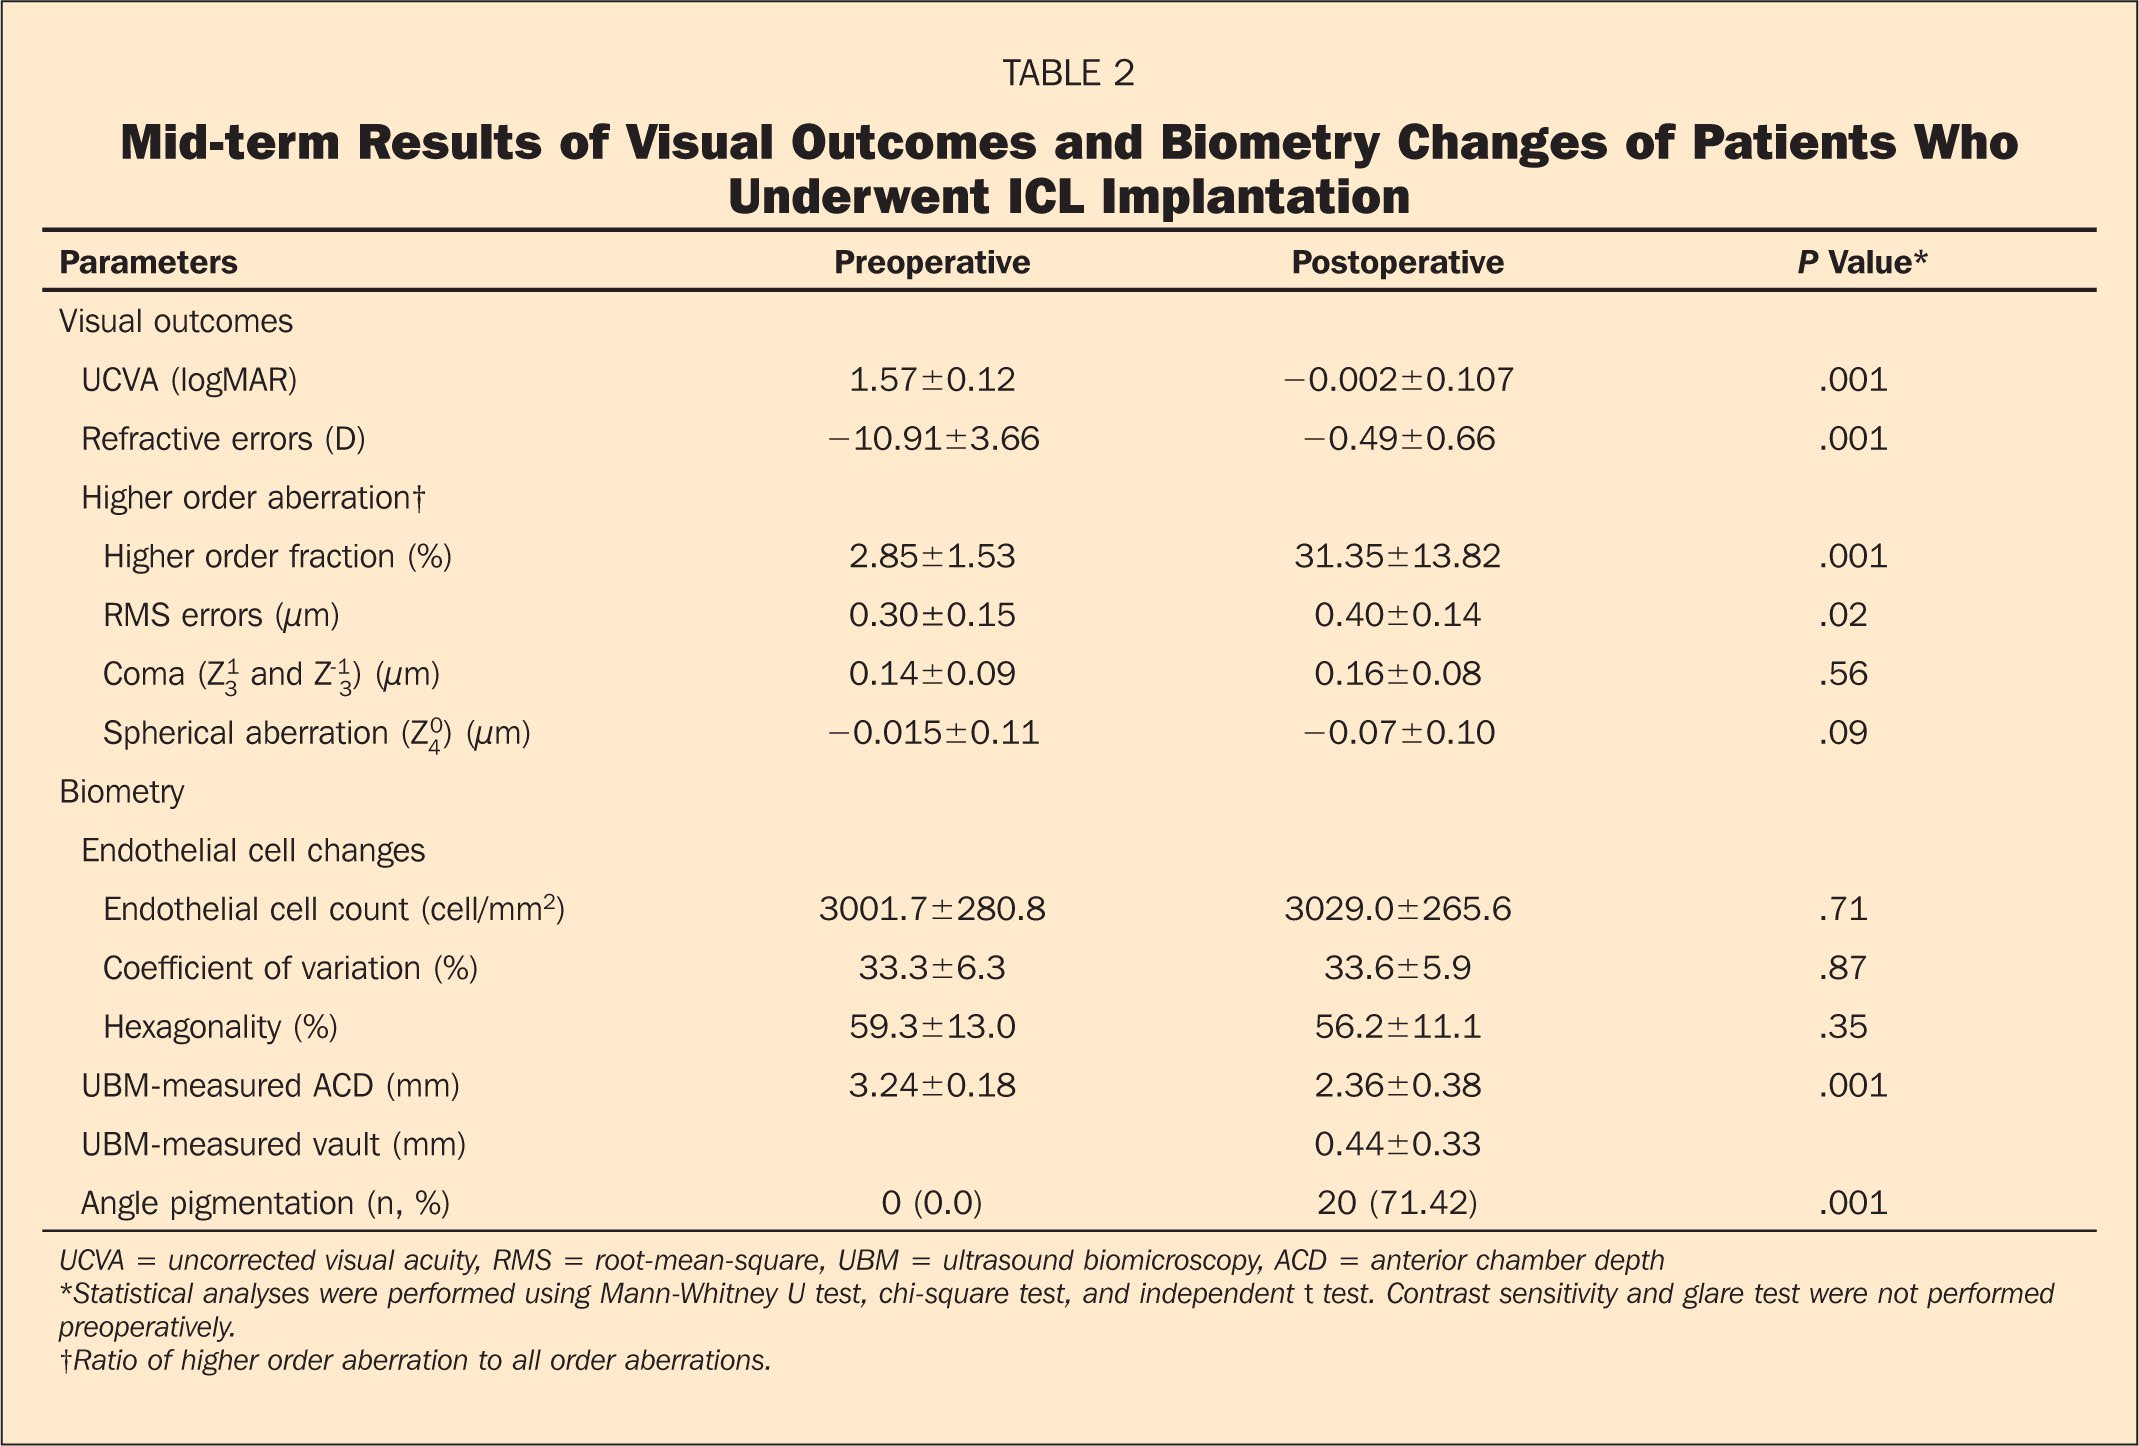 Mid-Term Results of Visual Outcomes and Biometry Changes of Patients Who Underwent ICL Implantation